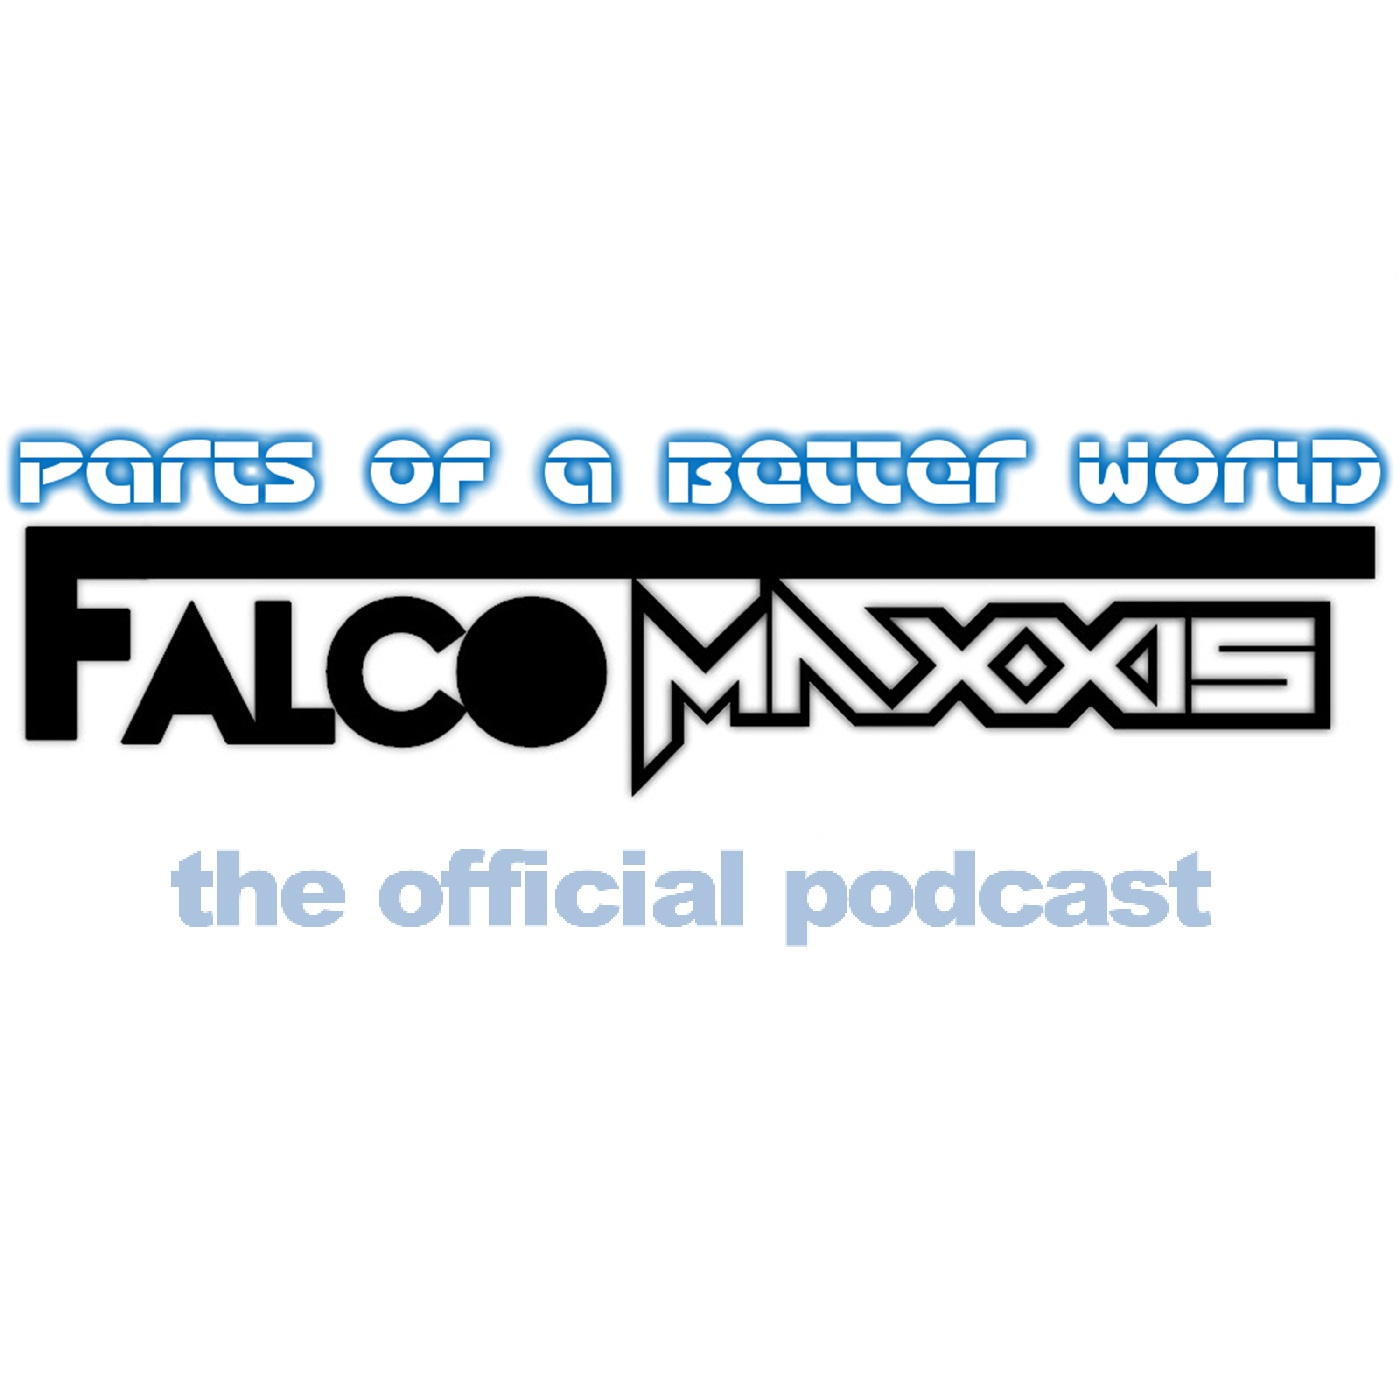 Falco Maxxis - Parts of a better world (official podcast)